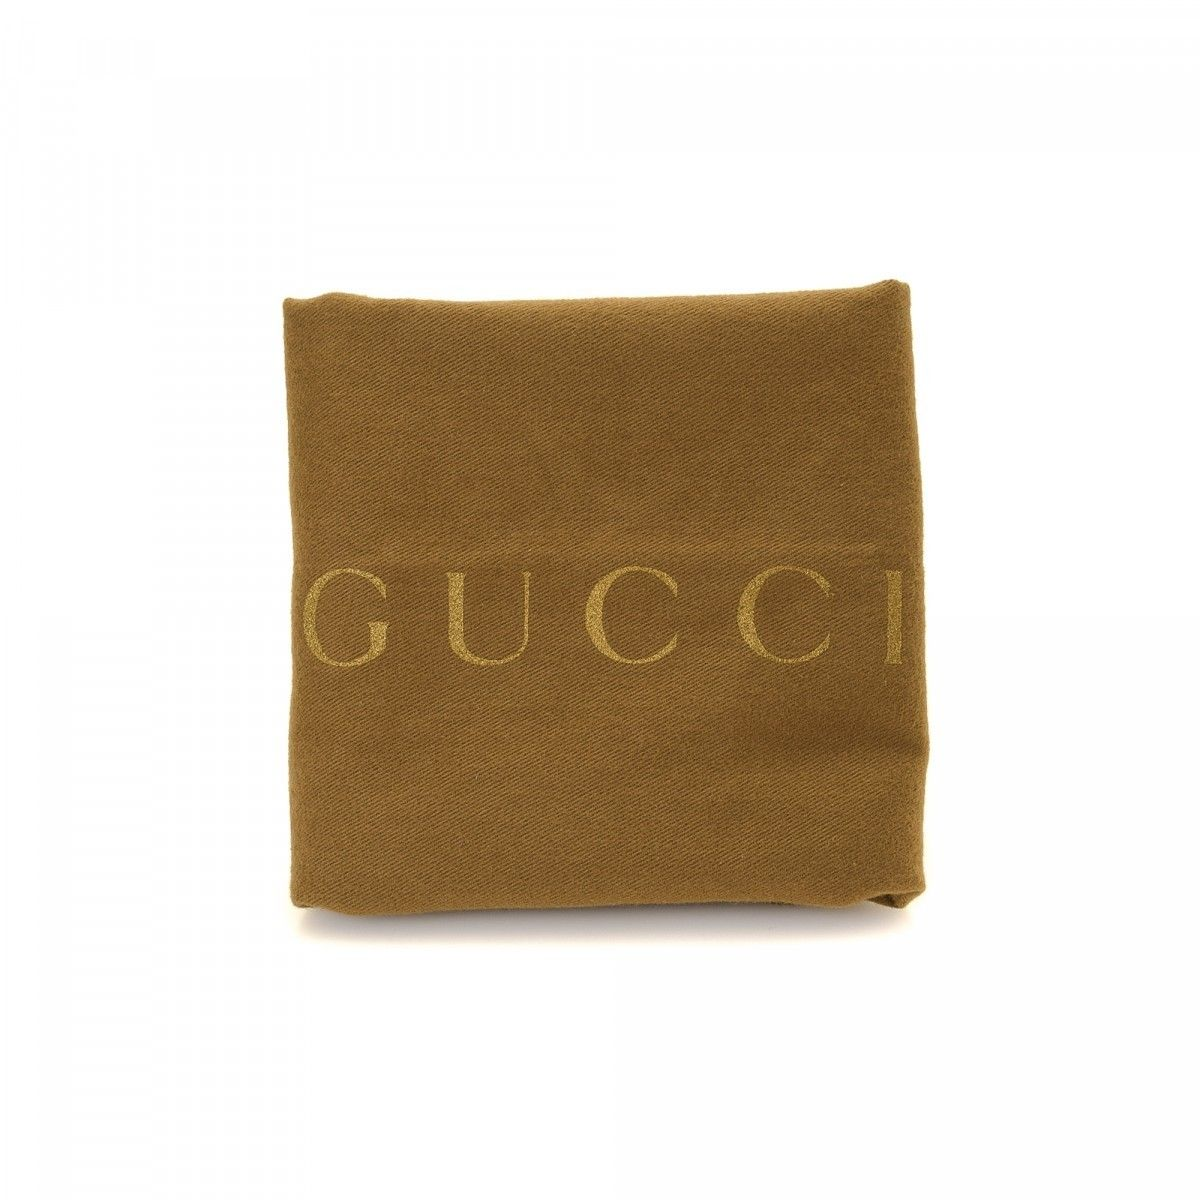 1b080d787e3 Gucci GG Canvas Abbey Crossbody Bag. Free Shipping. LXRandCo guarantees  this is an authentic vintage ...